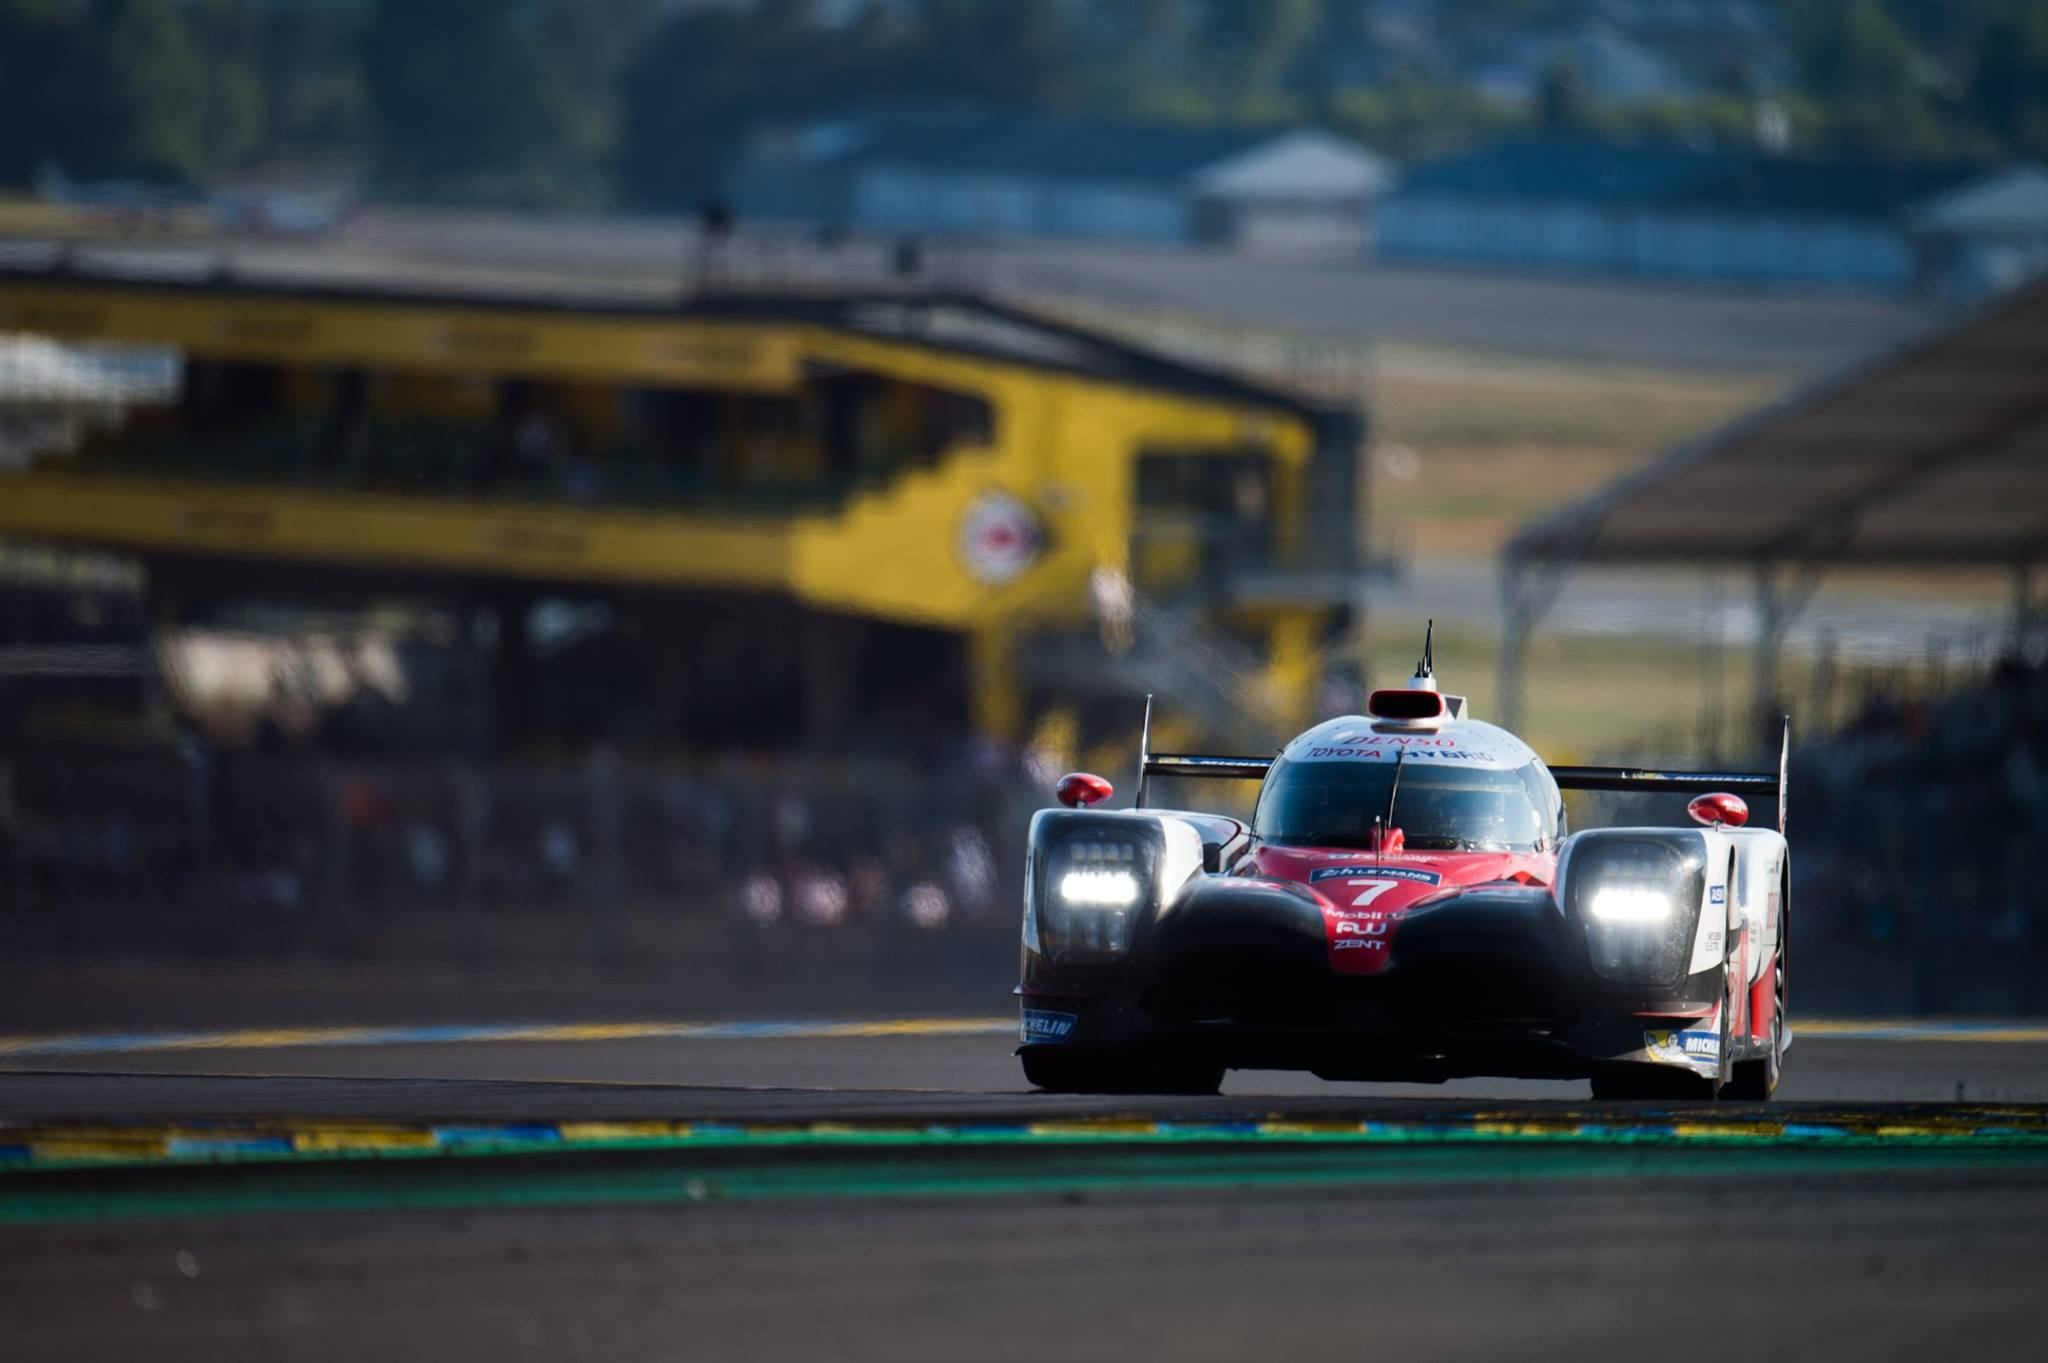 24 Hours Of Le Mans Toyota Fastest In Q1 With 1 2 Stint